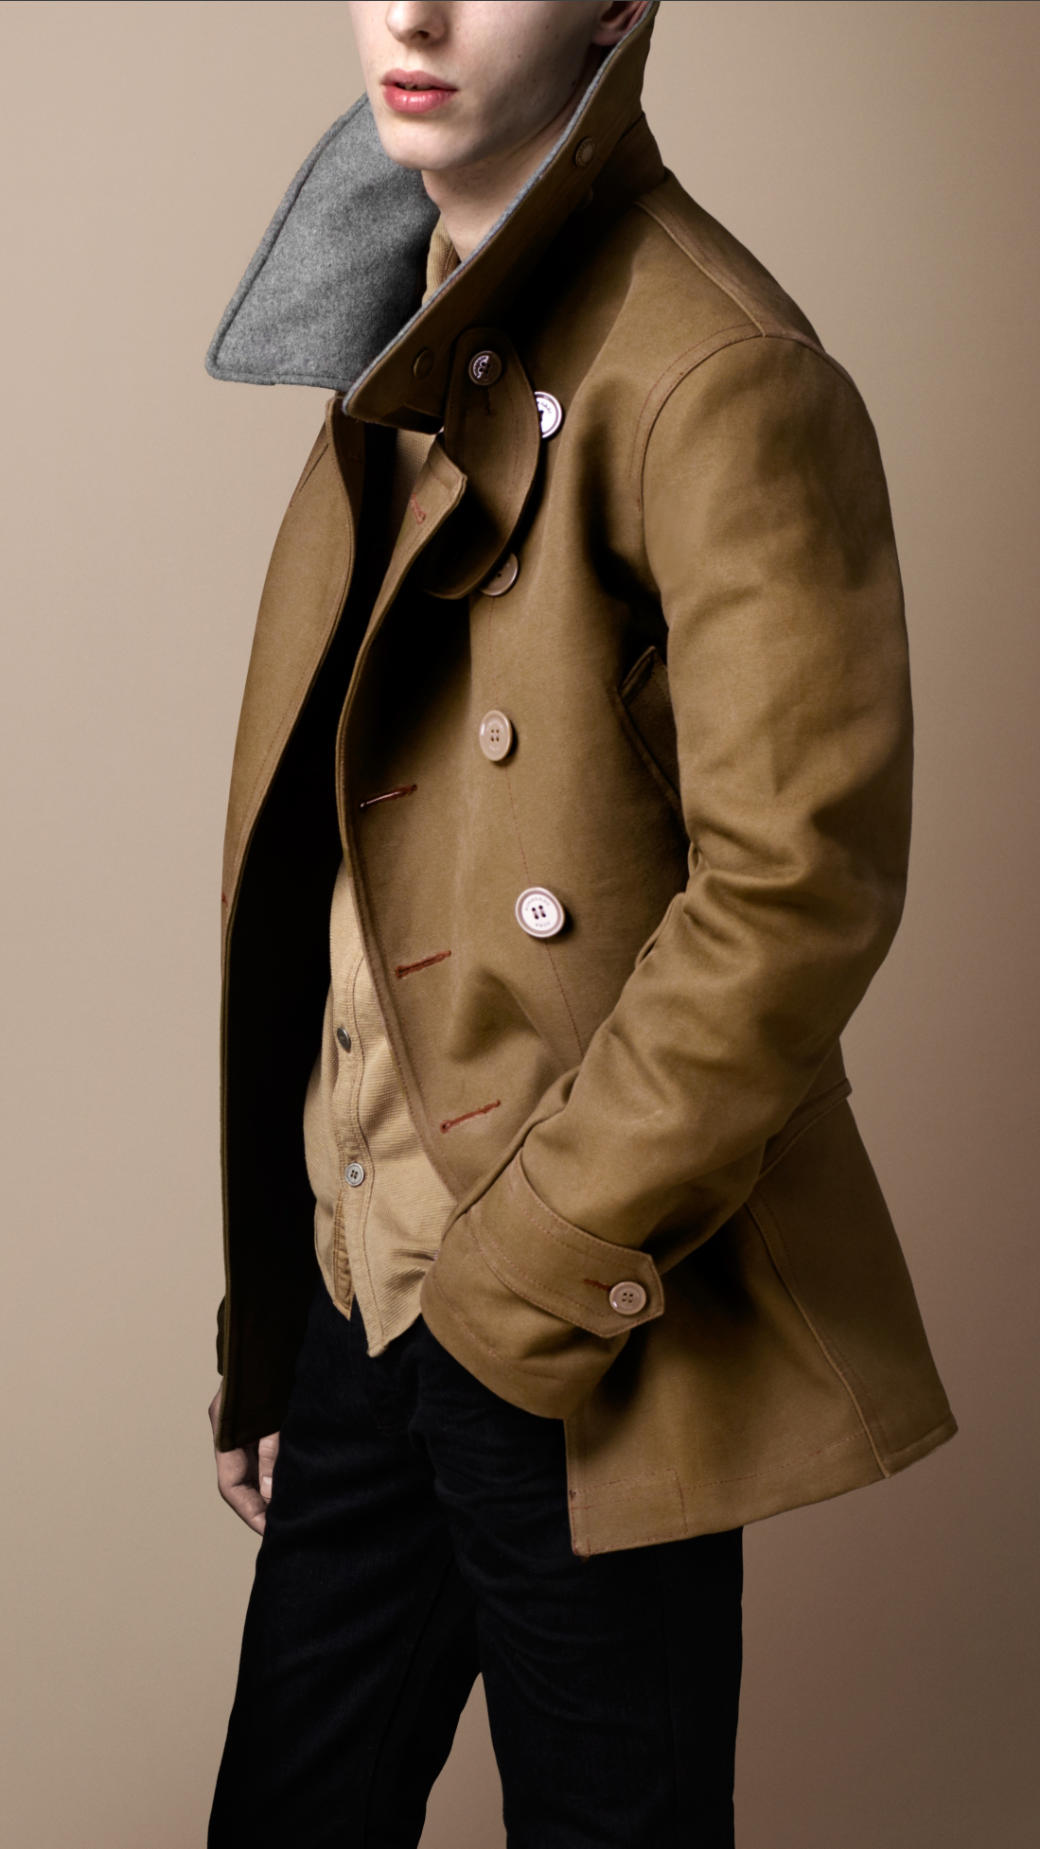 1bf2614af596 burberry-brit-amber-bonded-canvas-pea-coat-product-1-4043224-001971682.jpeg